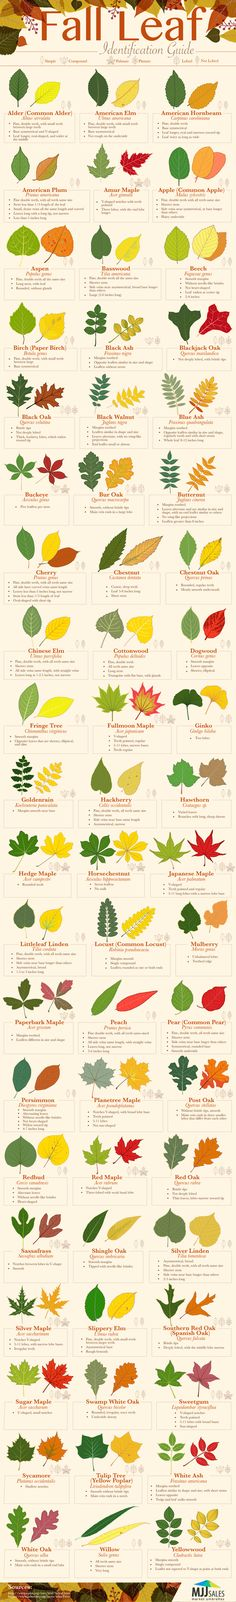 Fall Leaf Identification Guide #infographic #Gardening #Leaf